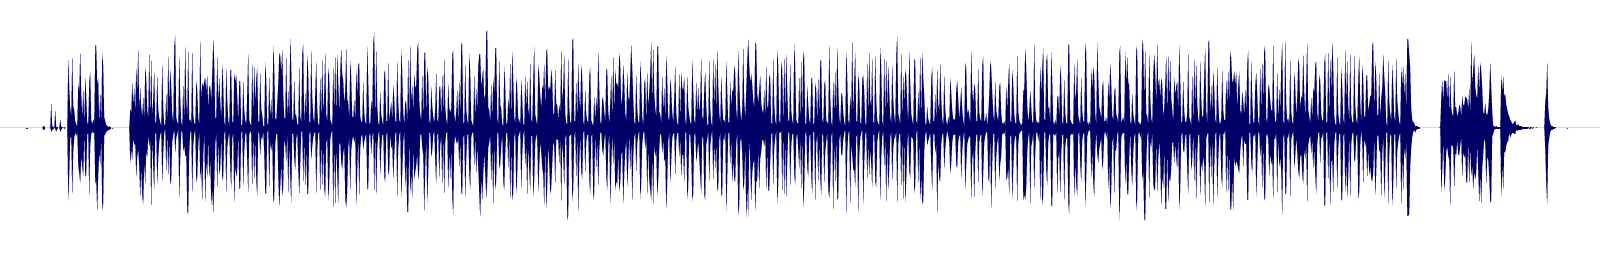 waveform of track #93427